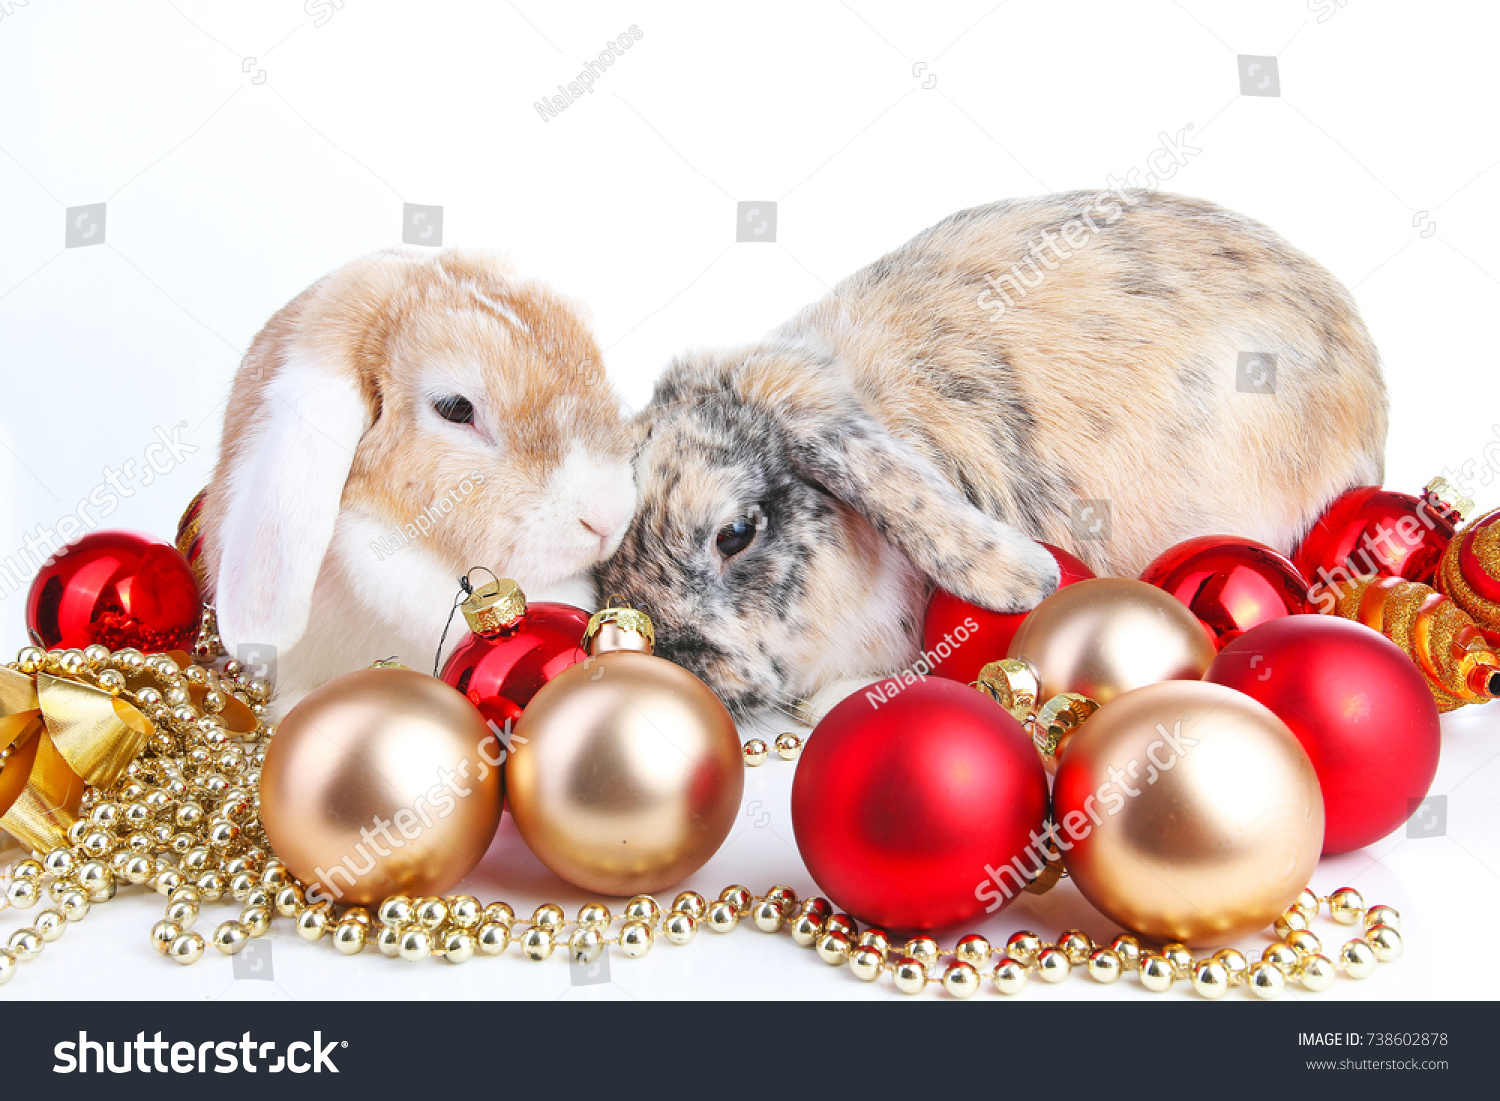 christmas animals cut lop eared rabbit pet friends on isolated white studio background rabbits